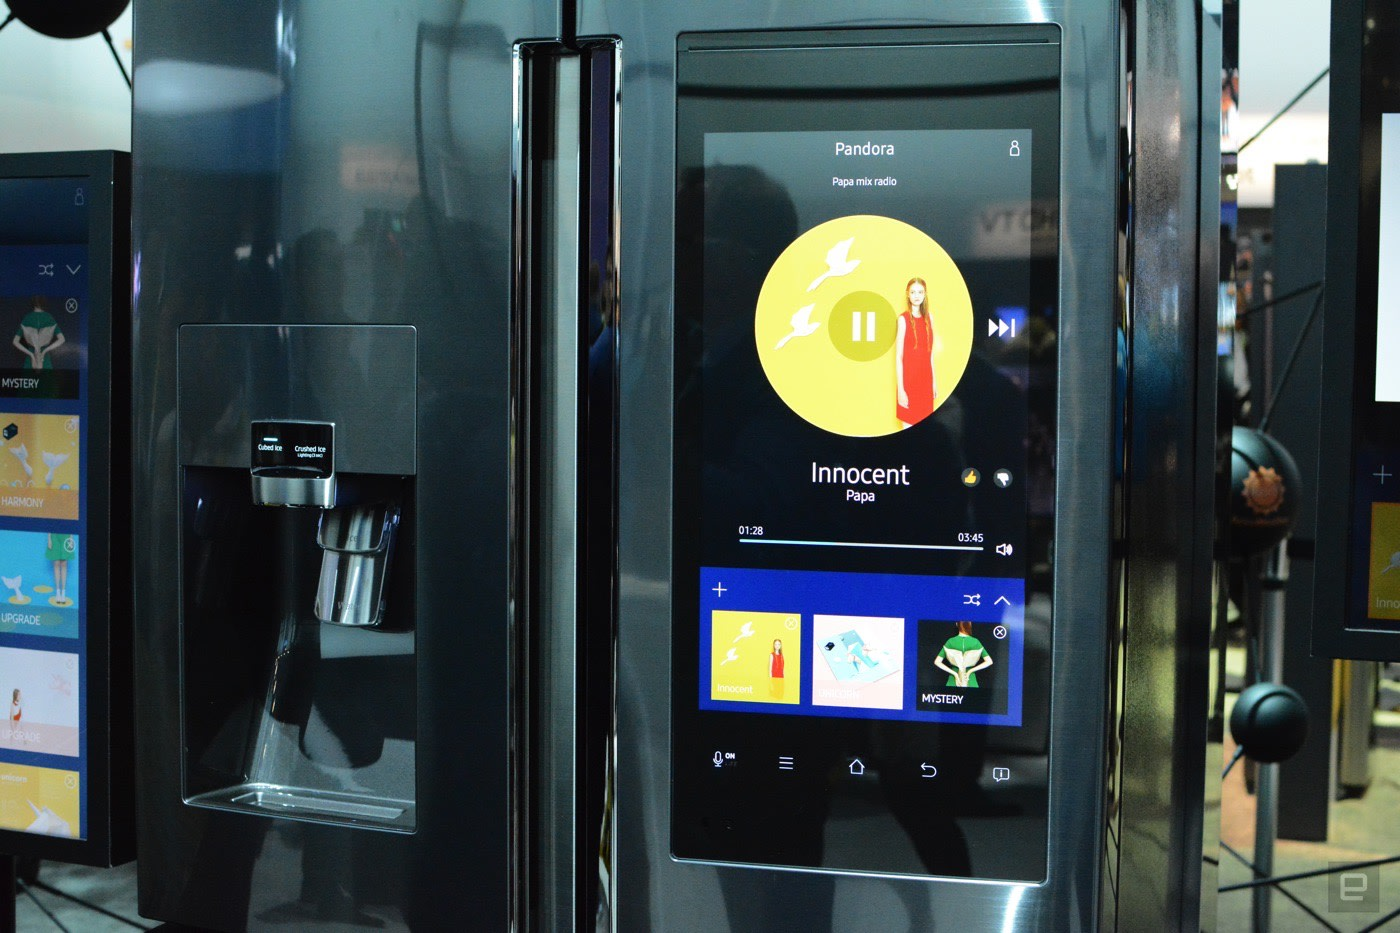 You can order groceries from the door of Samsung's new fridge